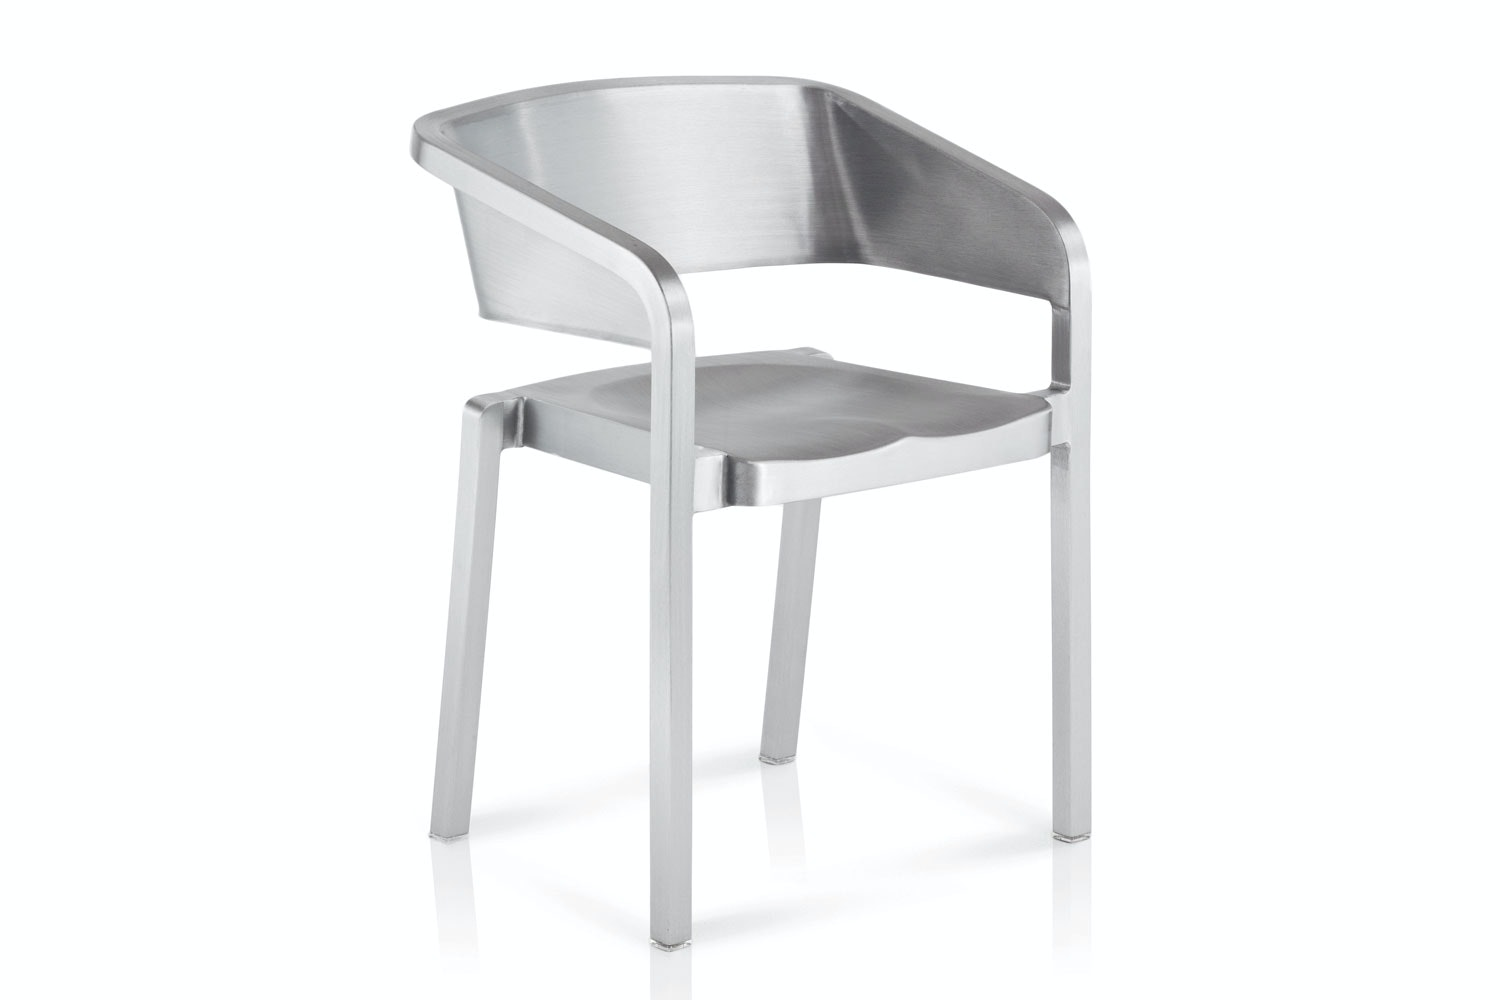 SoSo by Jean Nouvel for Emeco